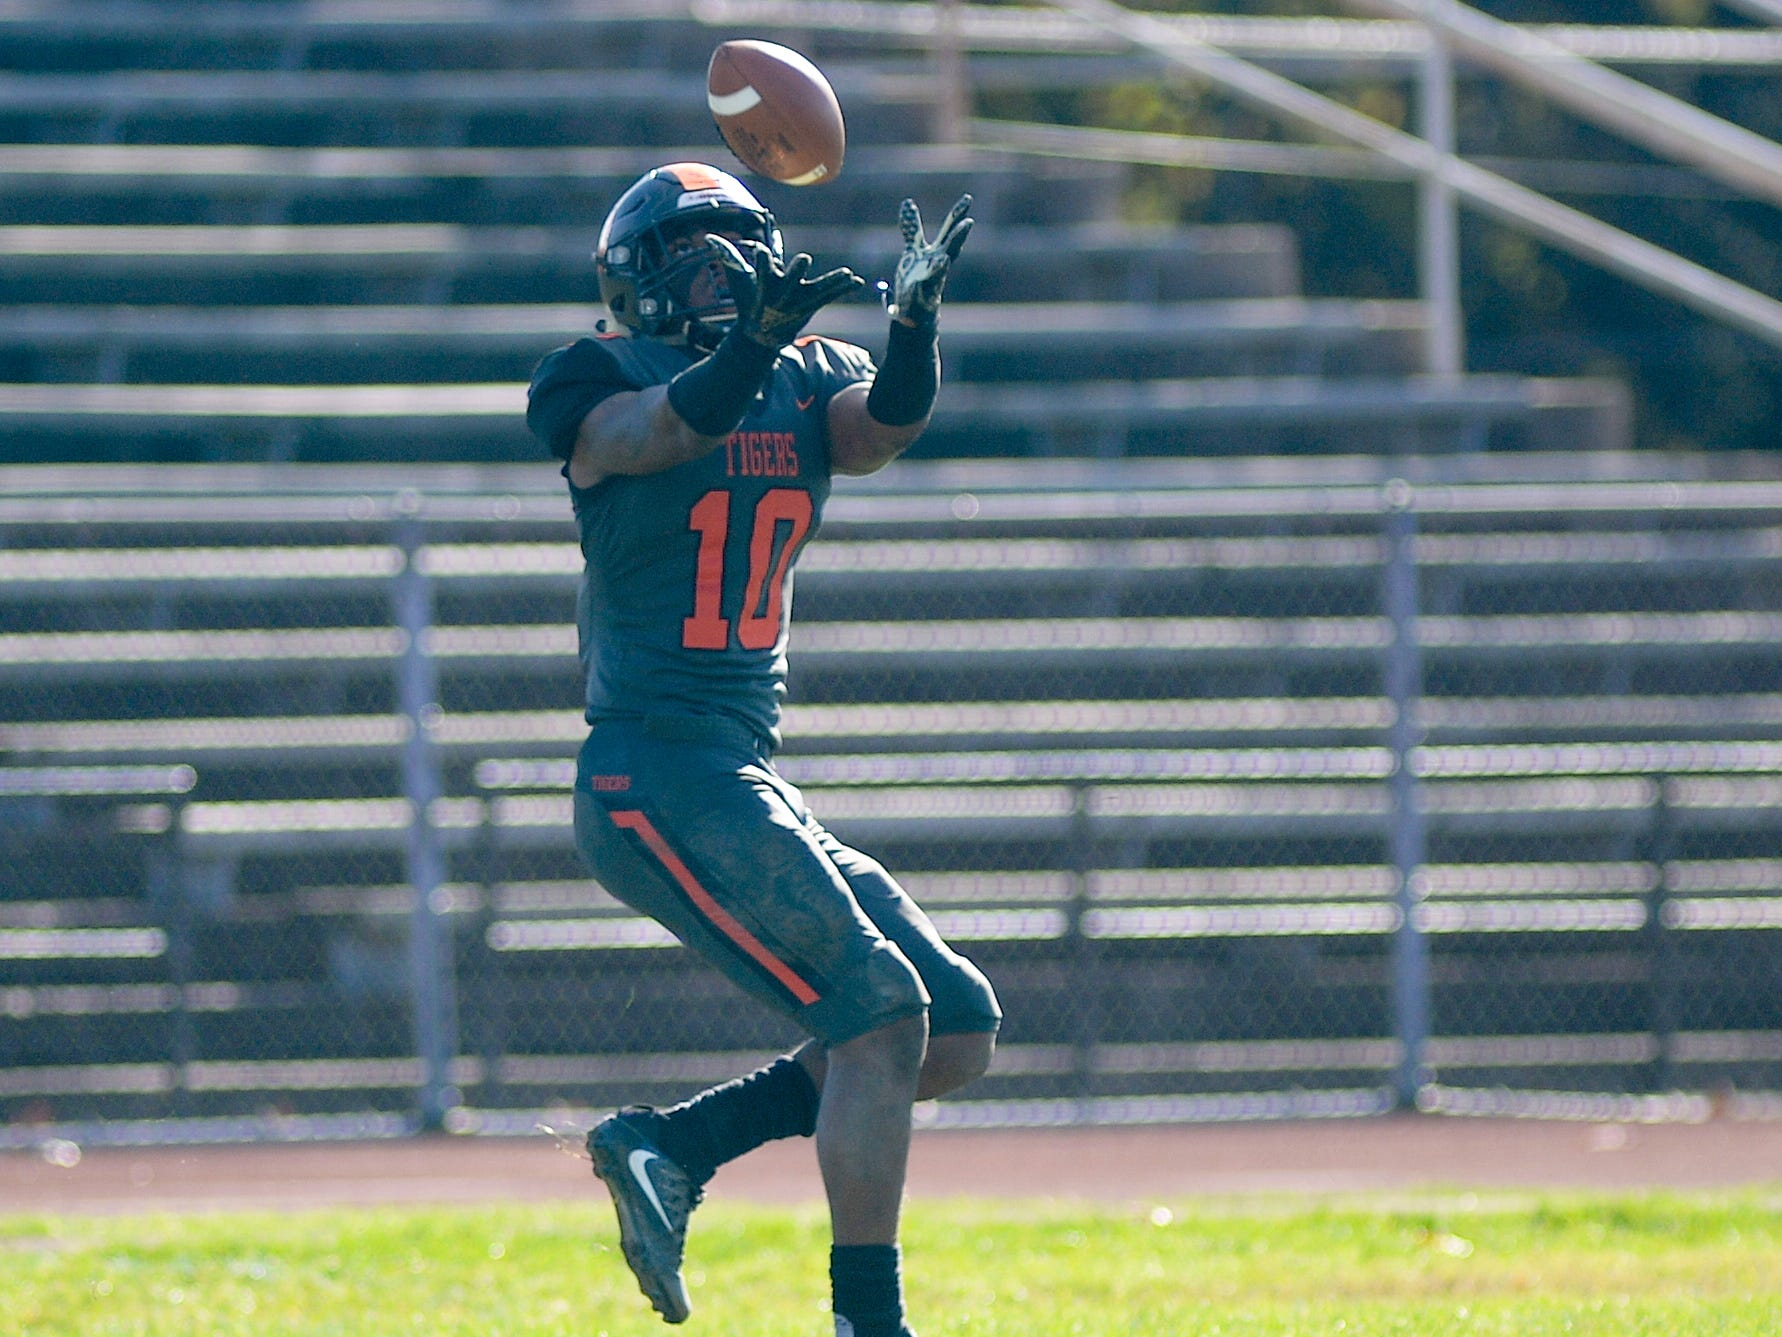 Woodrow Wilson's Fadil Diggs catches a touchdown pass during Saturday's South Jersey Group 3 first round game against Triton at Woodrow Wilson High School, Nov. 3, 2018.